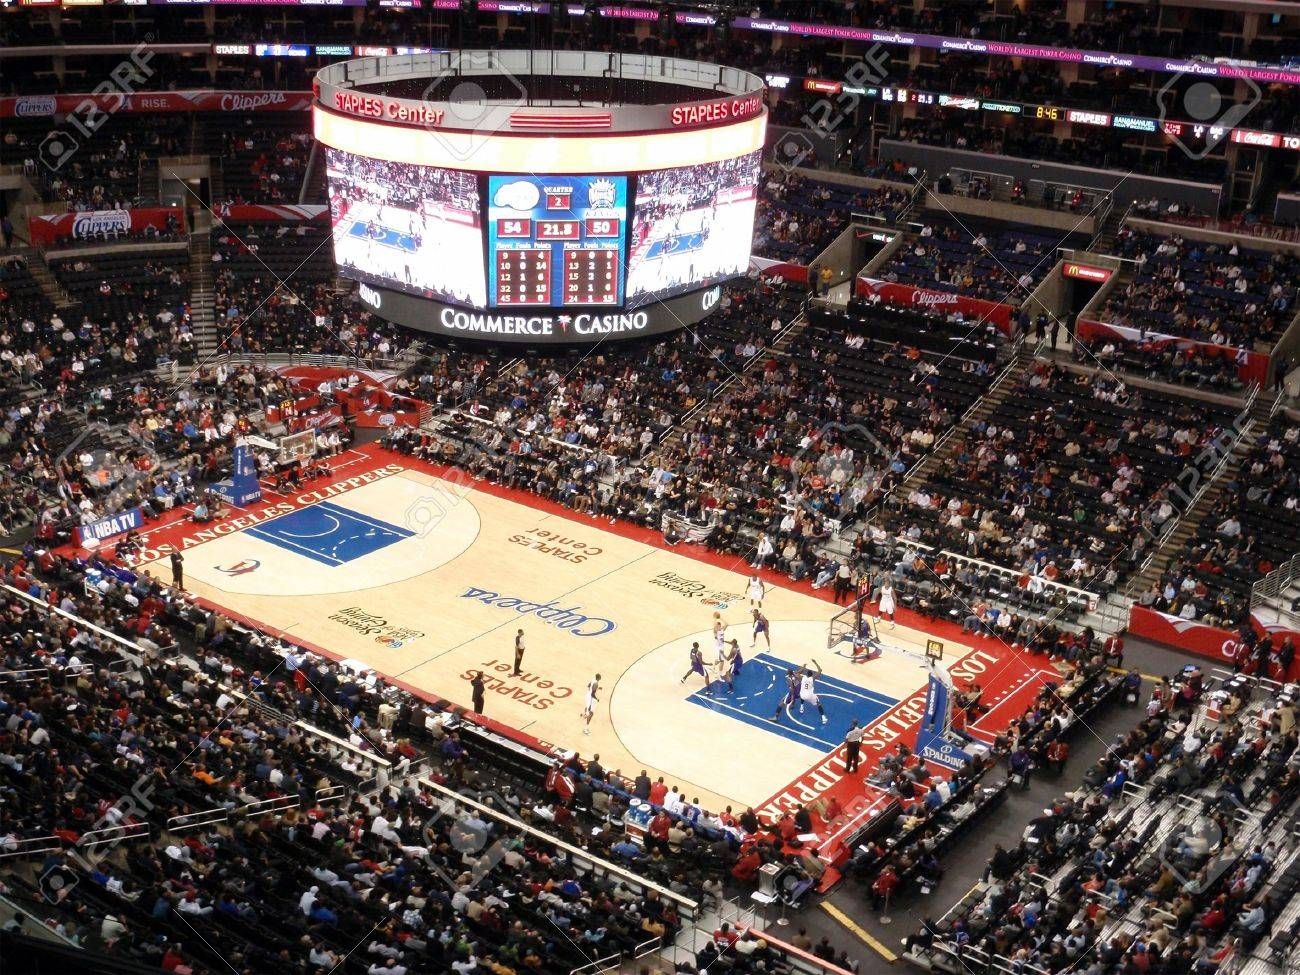 LOS ANGELES, NOVEMBER 25: Clippers vs. Kings: Clippers Blake Griffin holds ball up looking for someone to pass to as other play try to get open at Staples Center taken November 25 2010 Los Angeles California. Stock Photo - 8526478